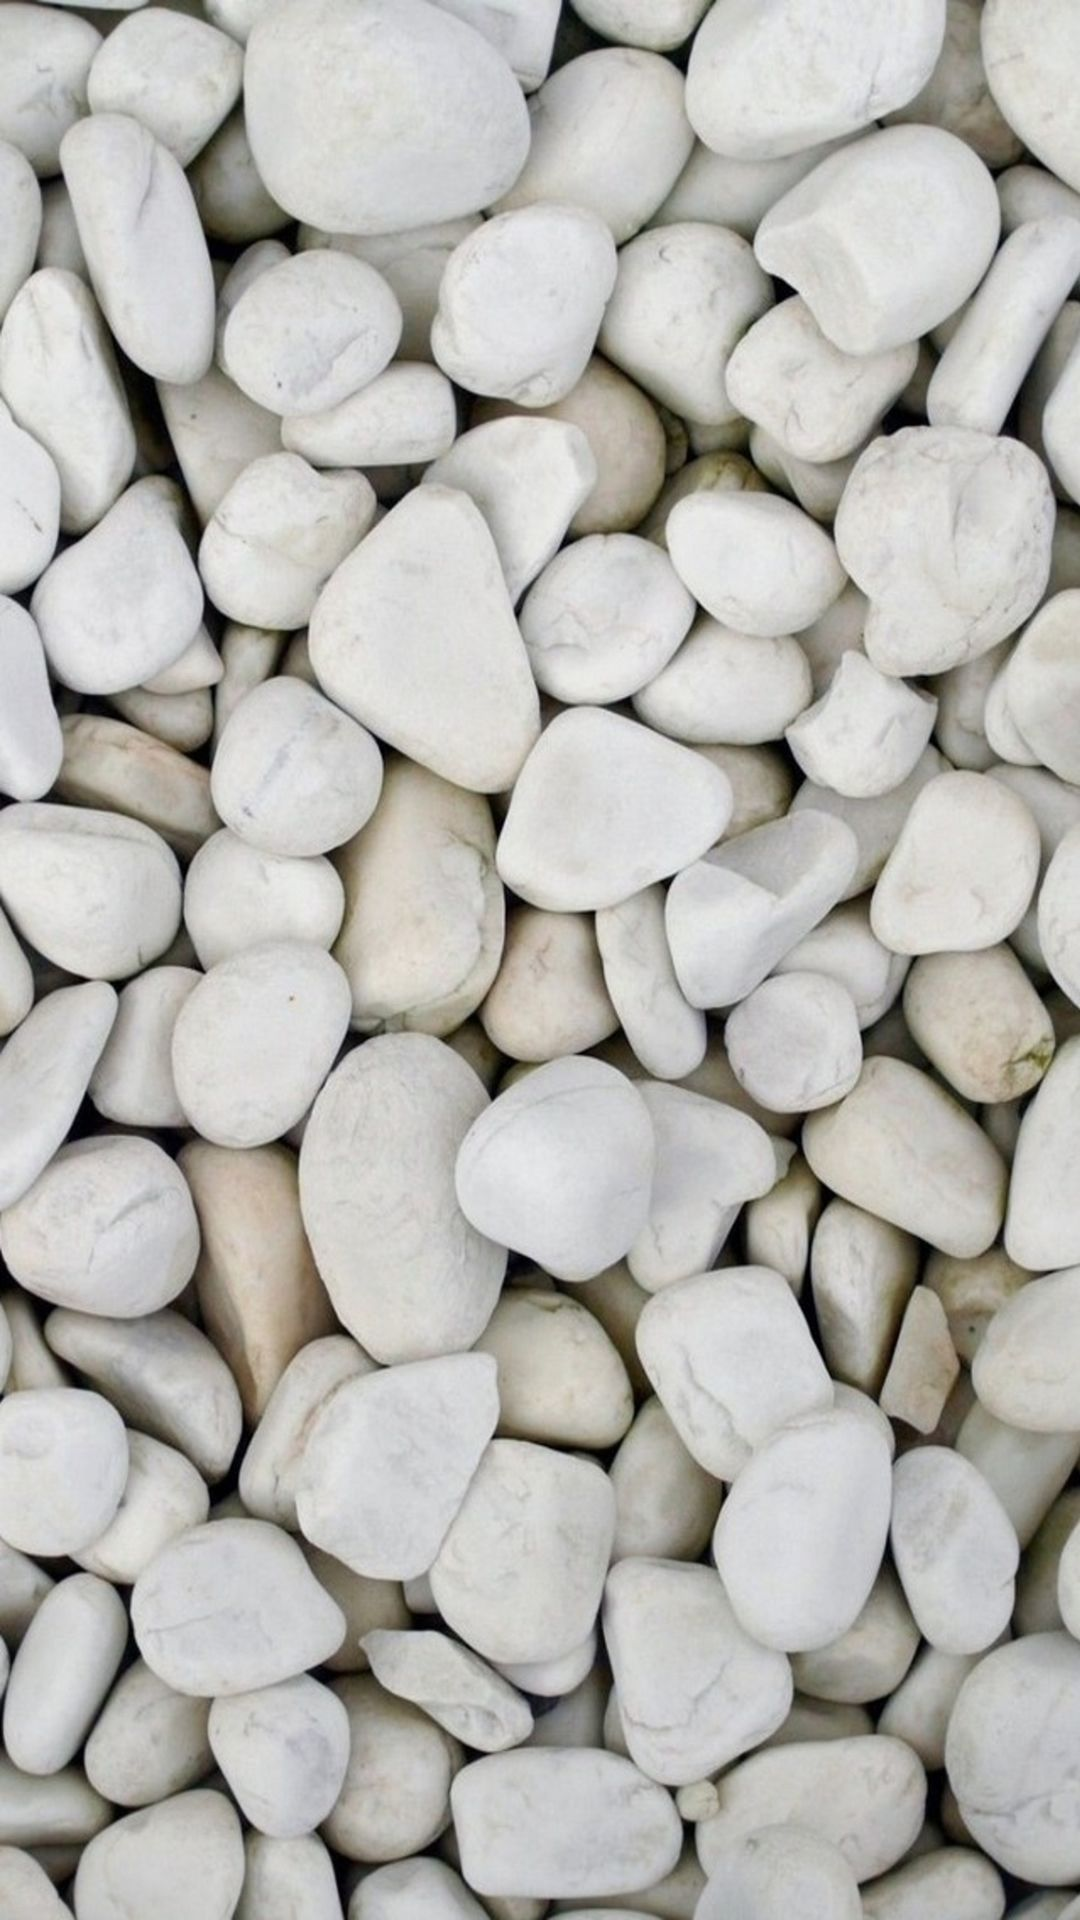 Beach White Pebble Rock Clitter Background iPhone 6 wallpaper ...